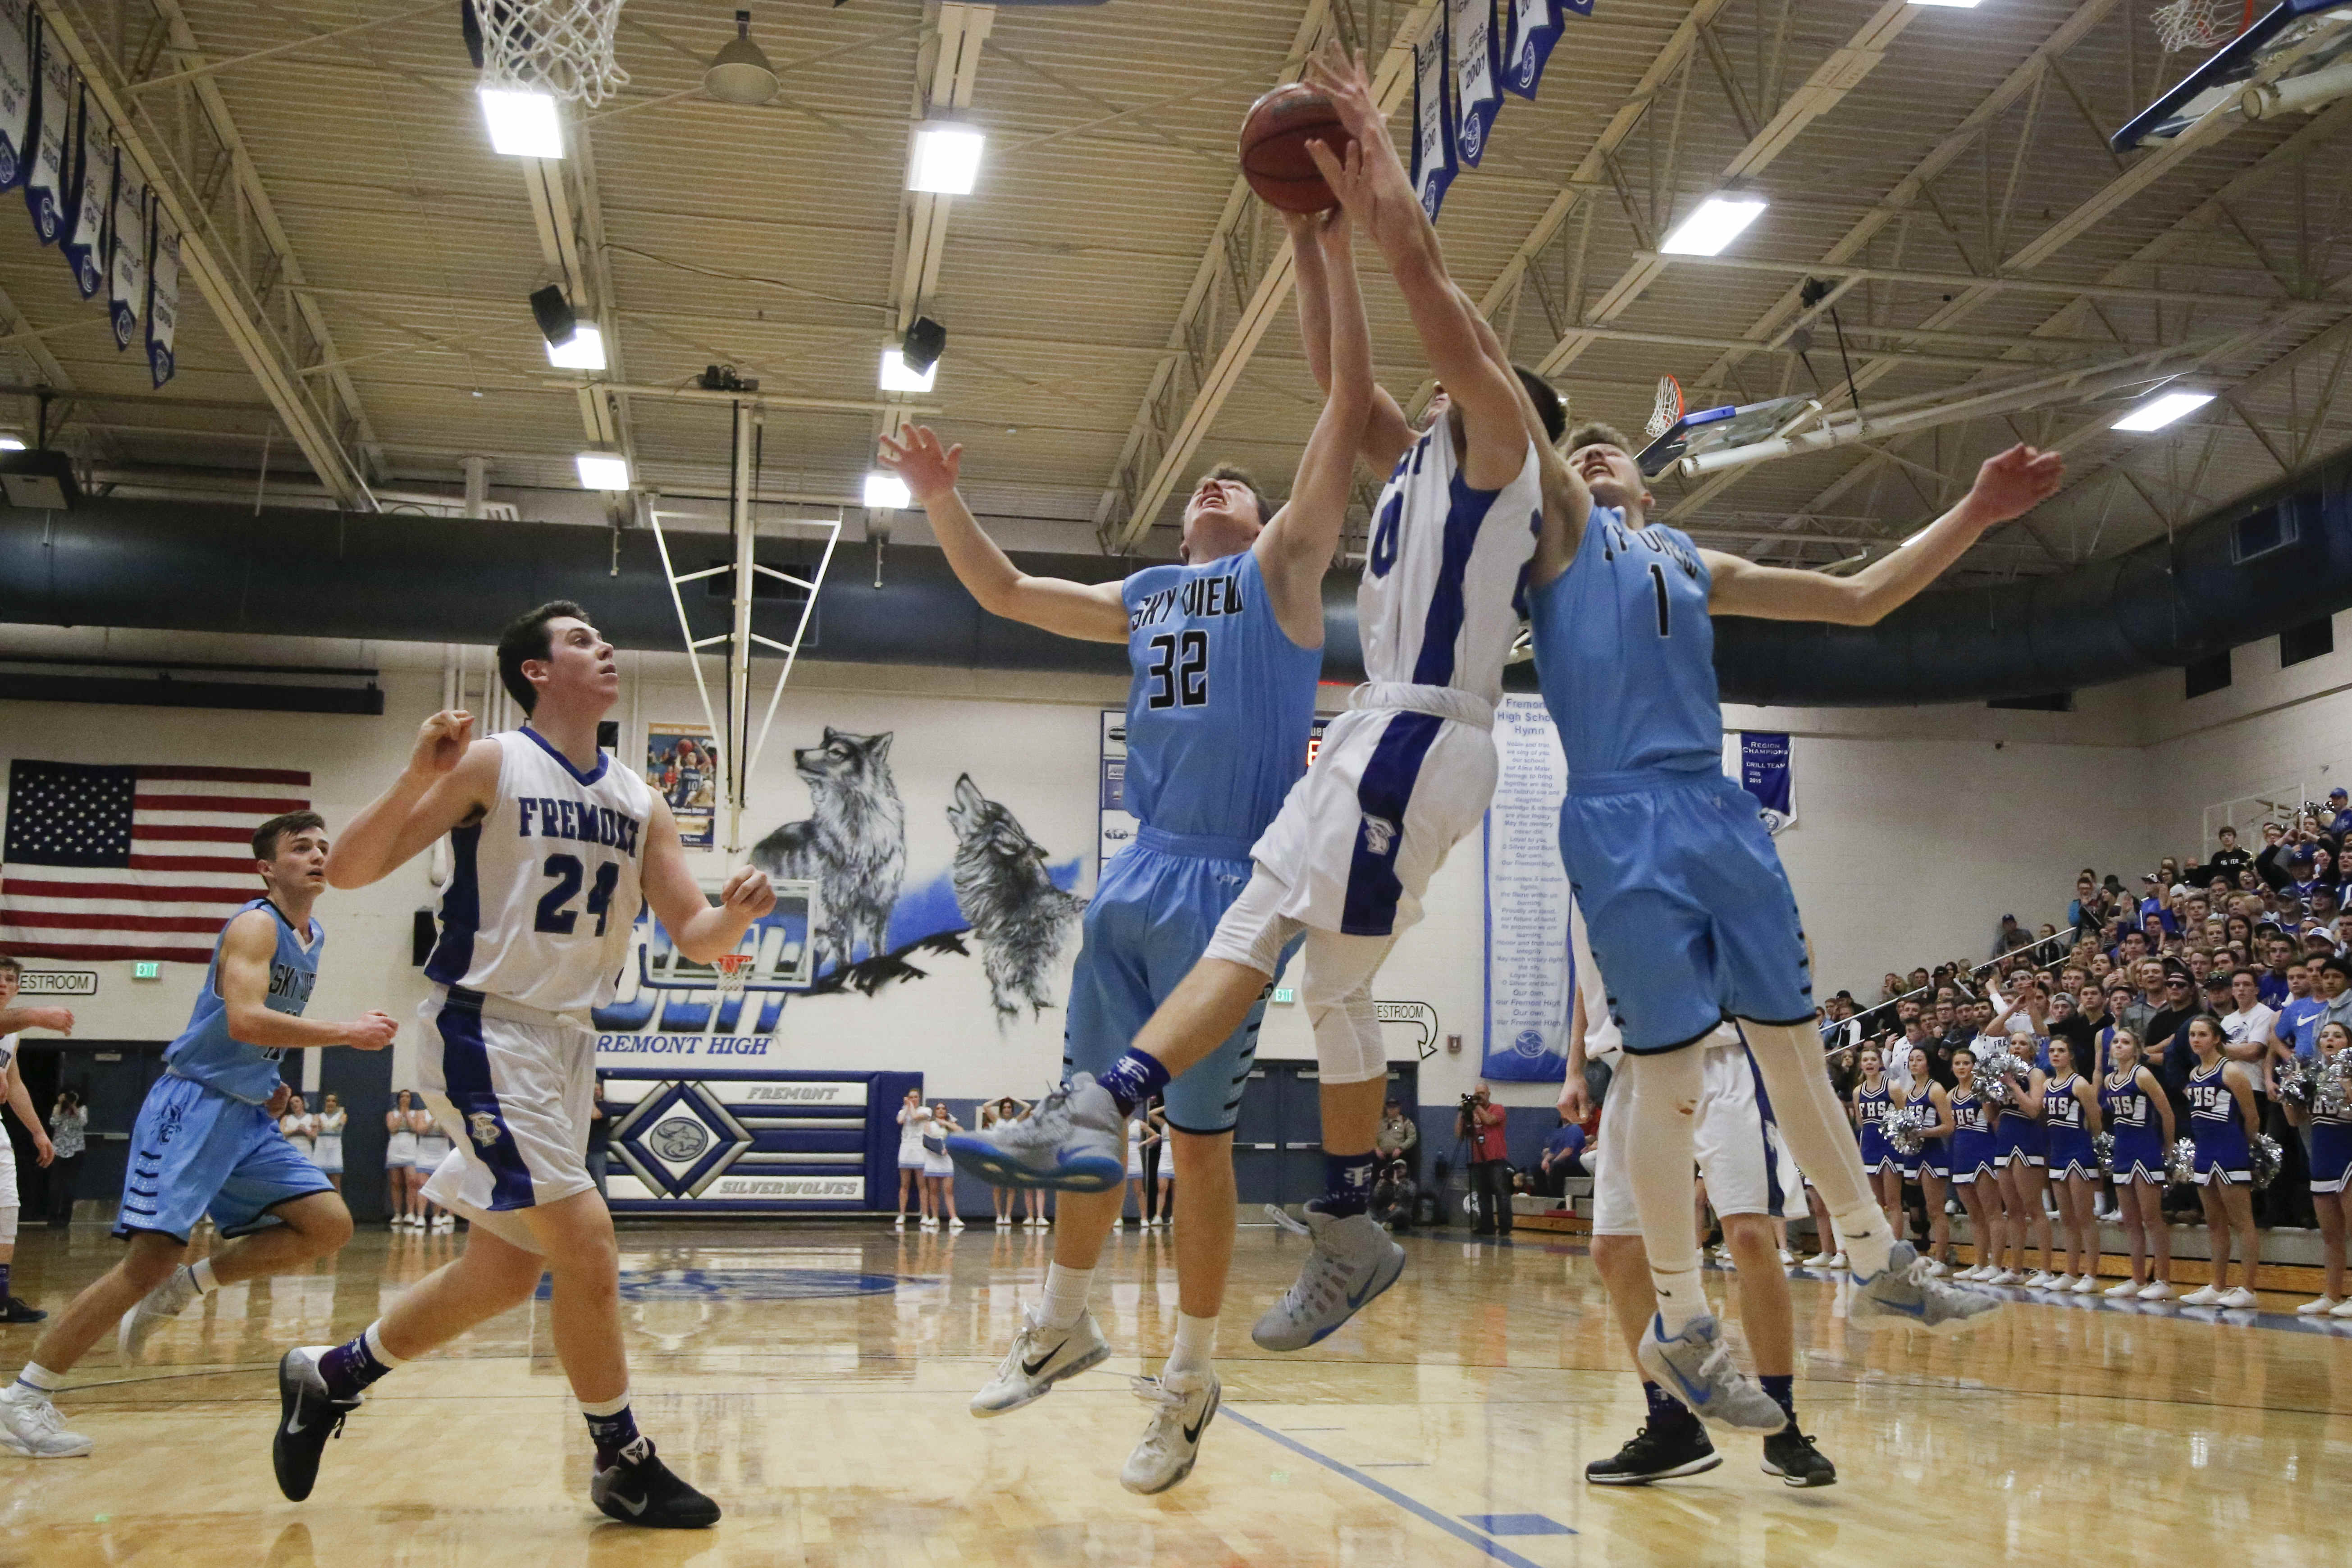 Sky View battles Fremont for the Region 1 title on Tuesday, Feb. 21, 2017, at Fremont High School. Sky View went on to defeat Fremont, 72-64.